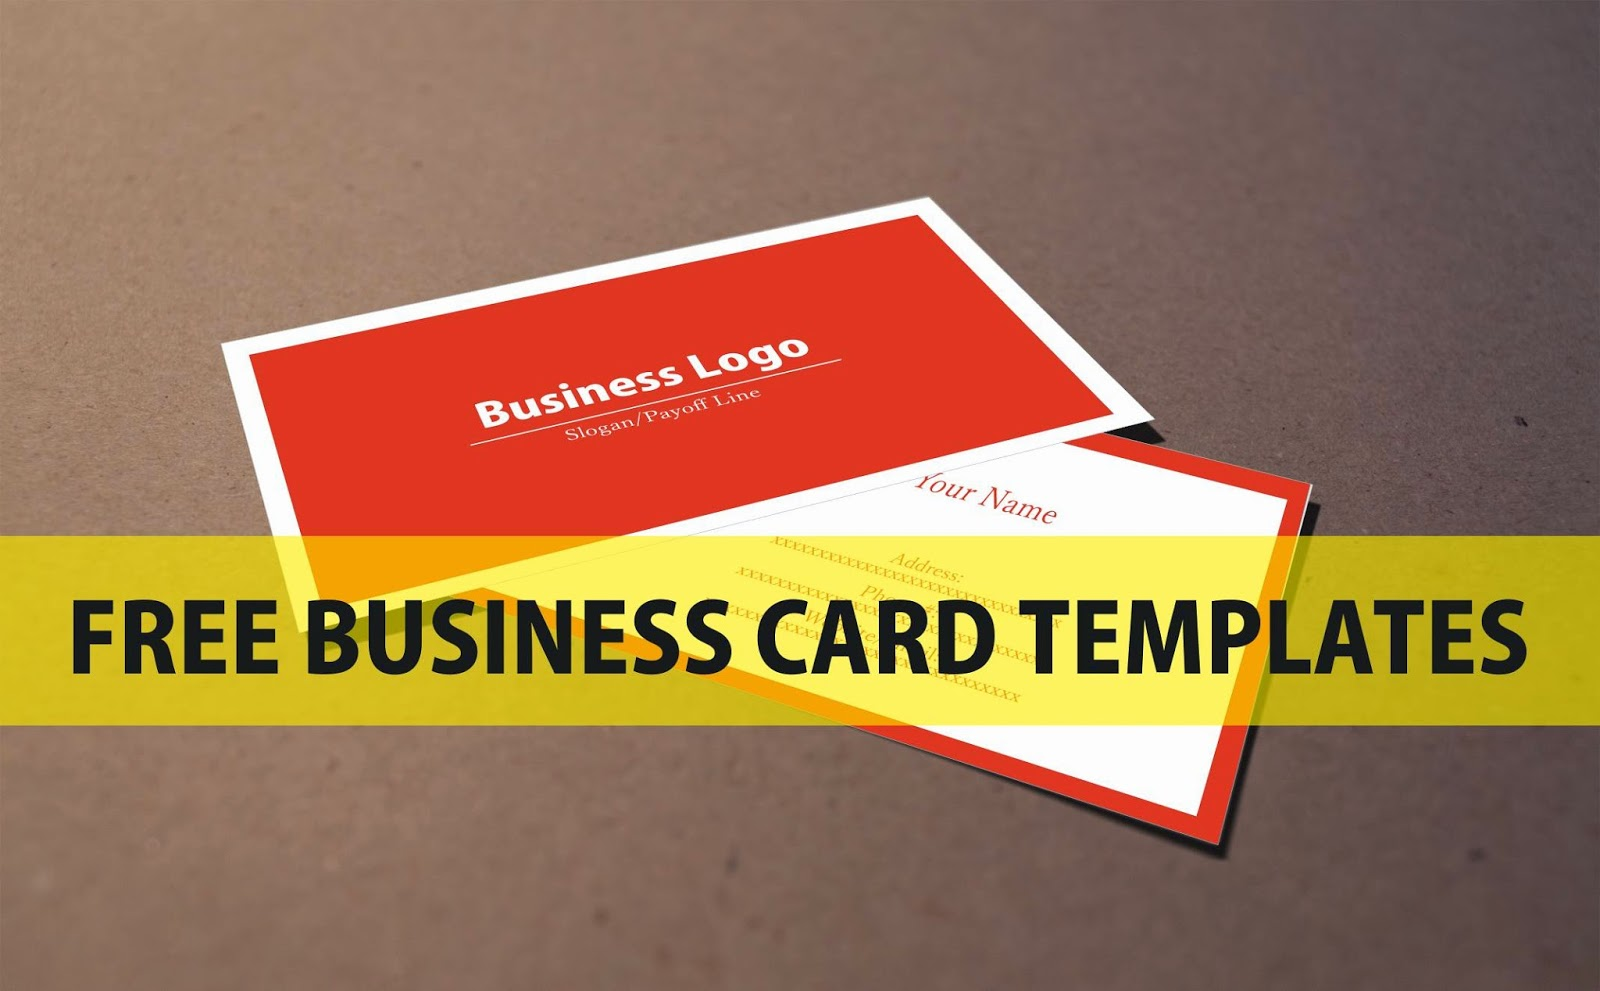 Free business card template download coreldraw file a graphic free business card template download coreldraw file wajeb Image collections